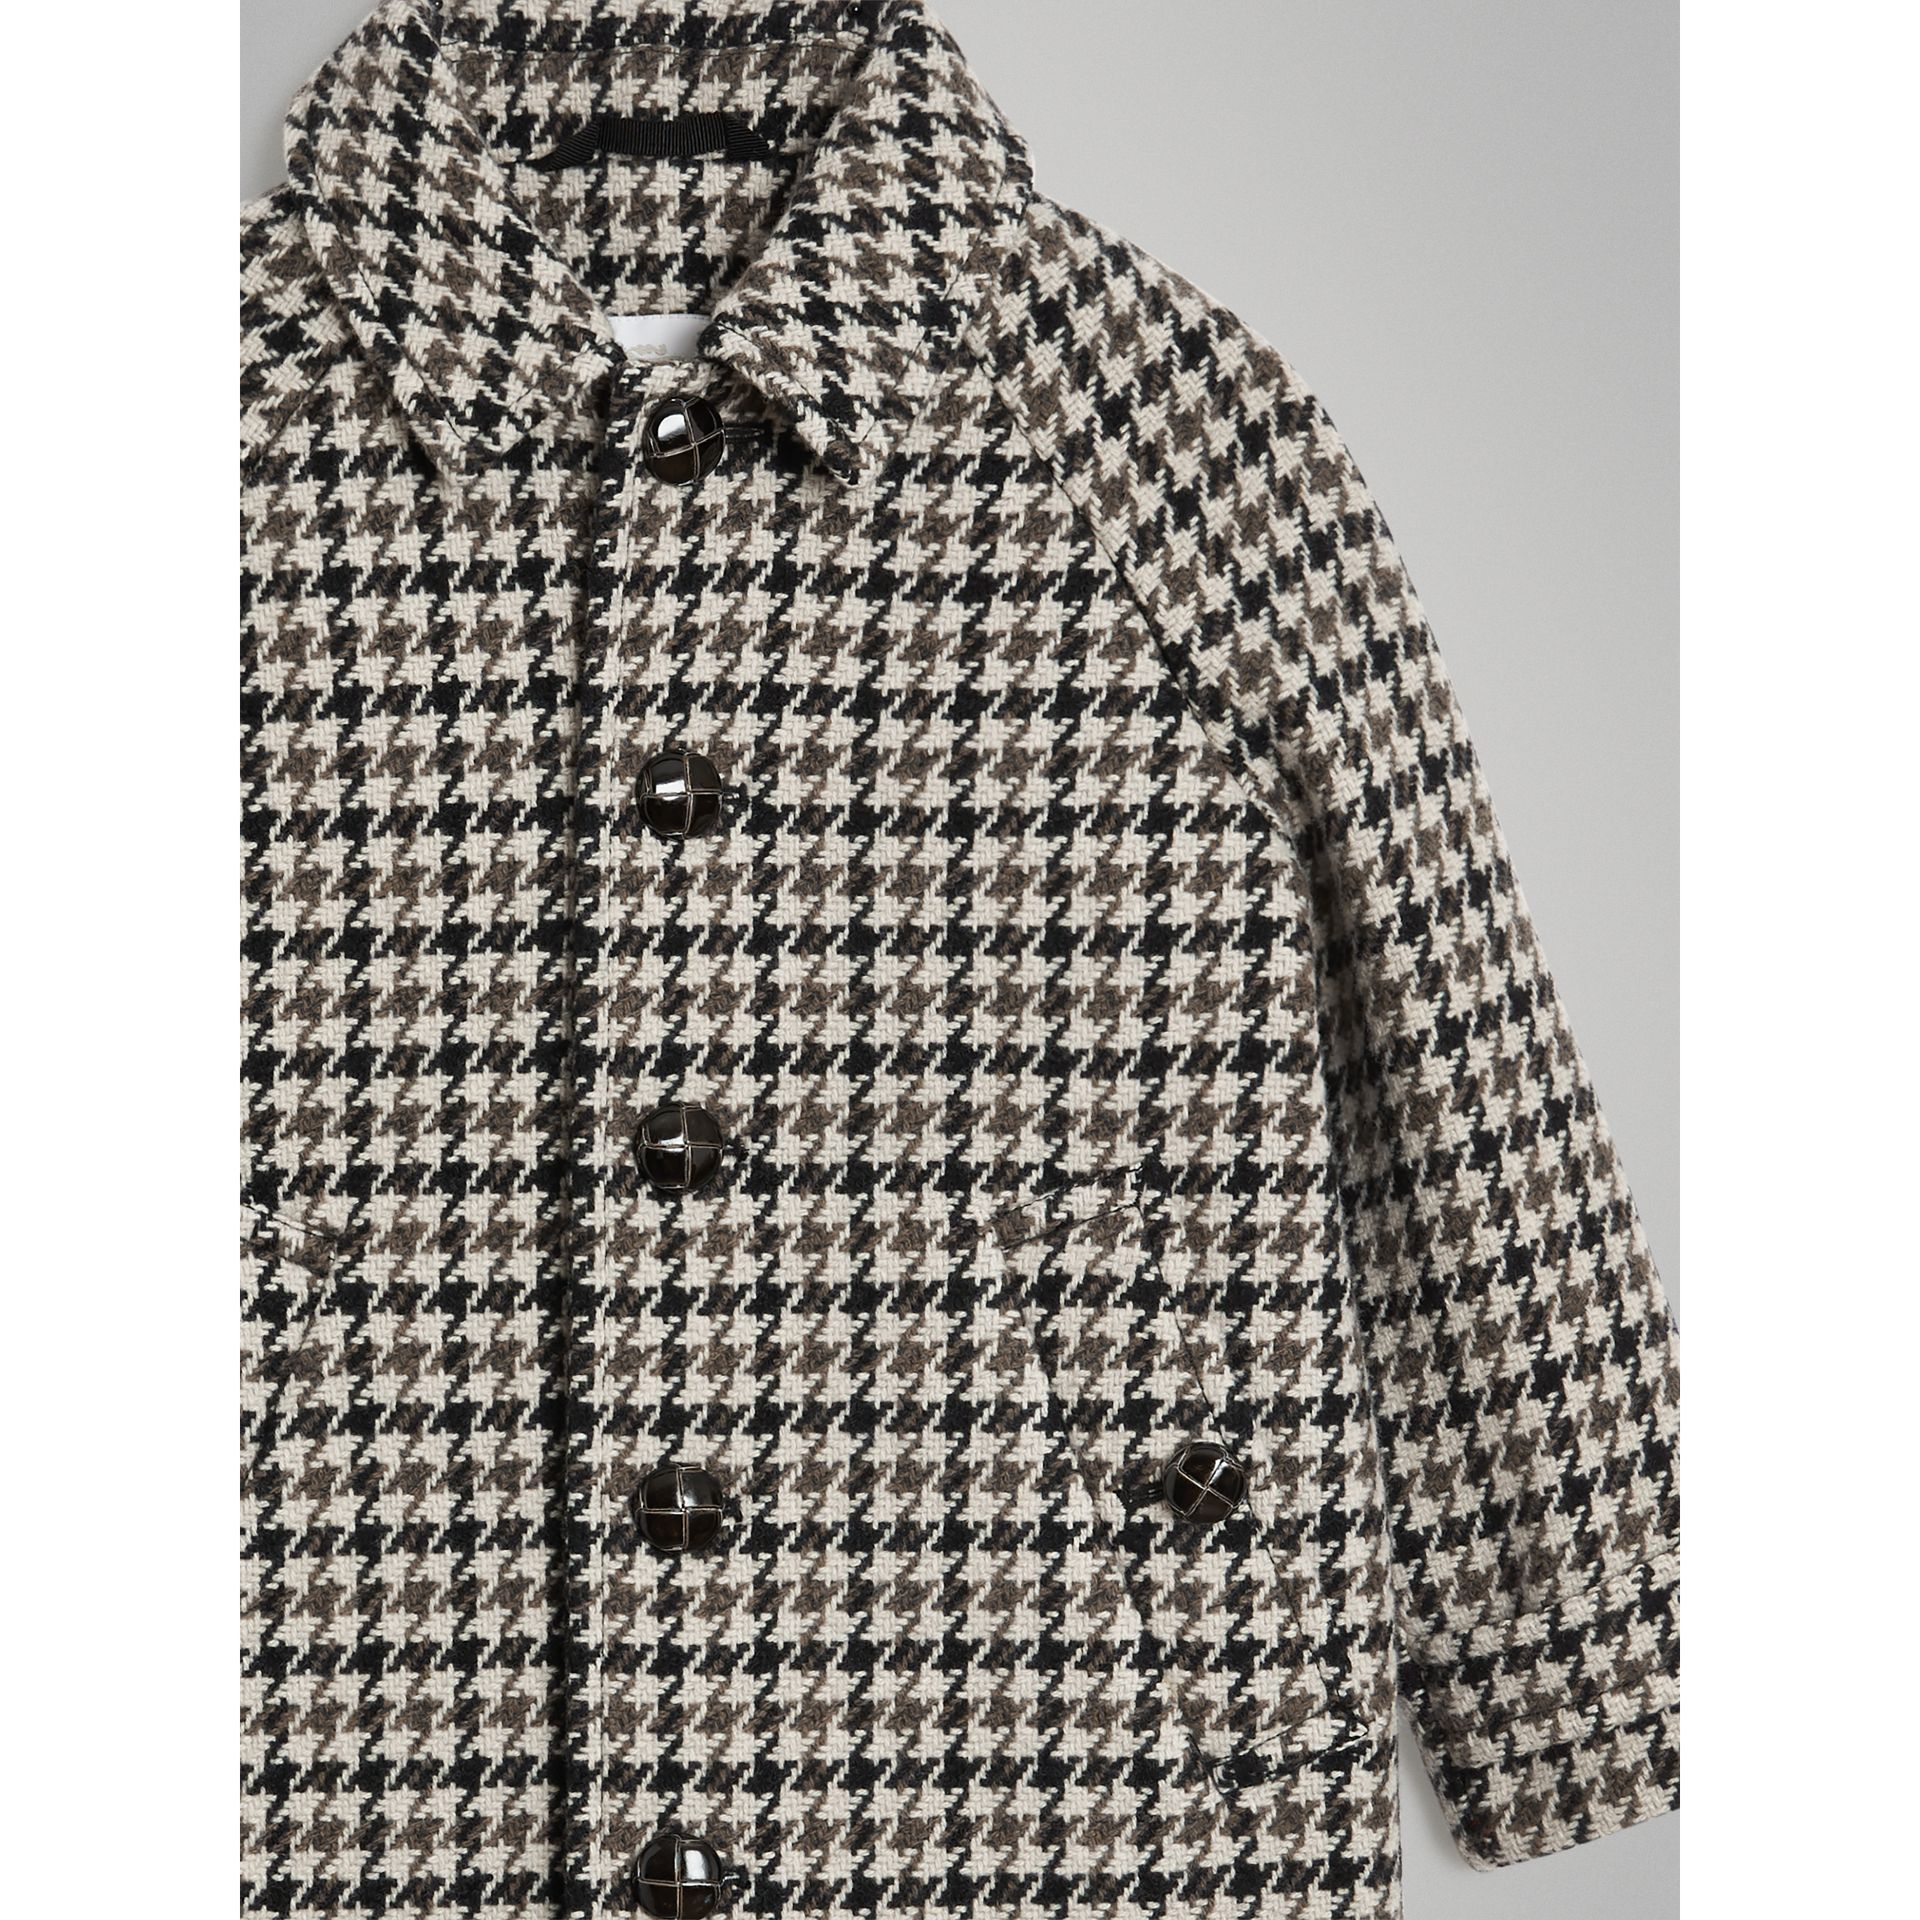 Houndstooth Check Wool Cashmere Blend Coat in Mid Grey | Burberry United Kingdom - gallery image 5